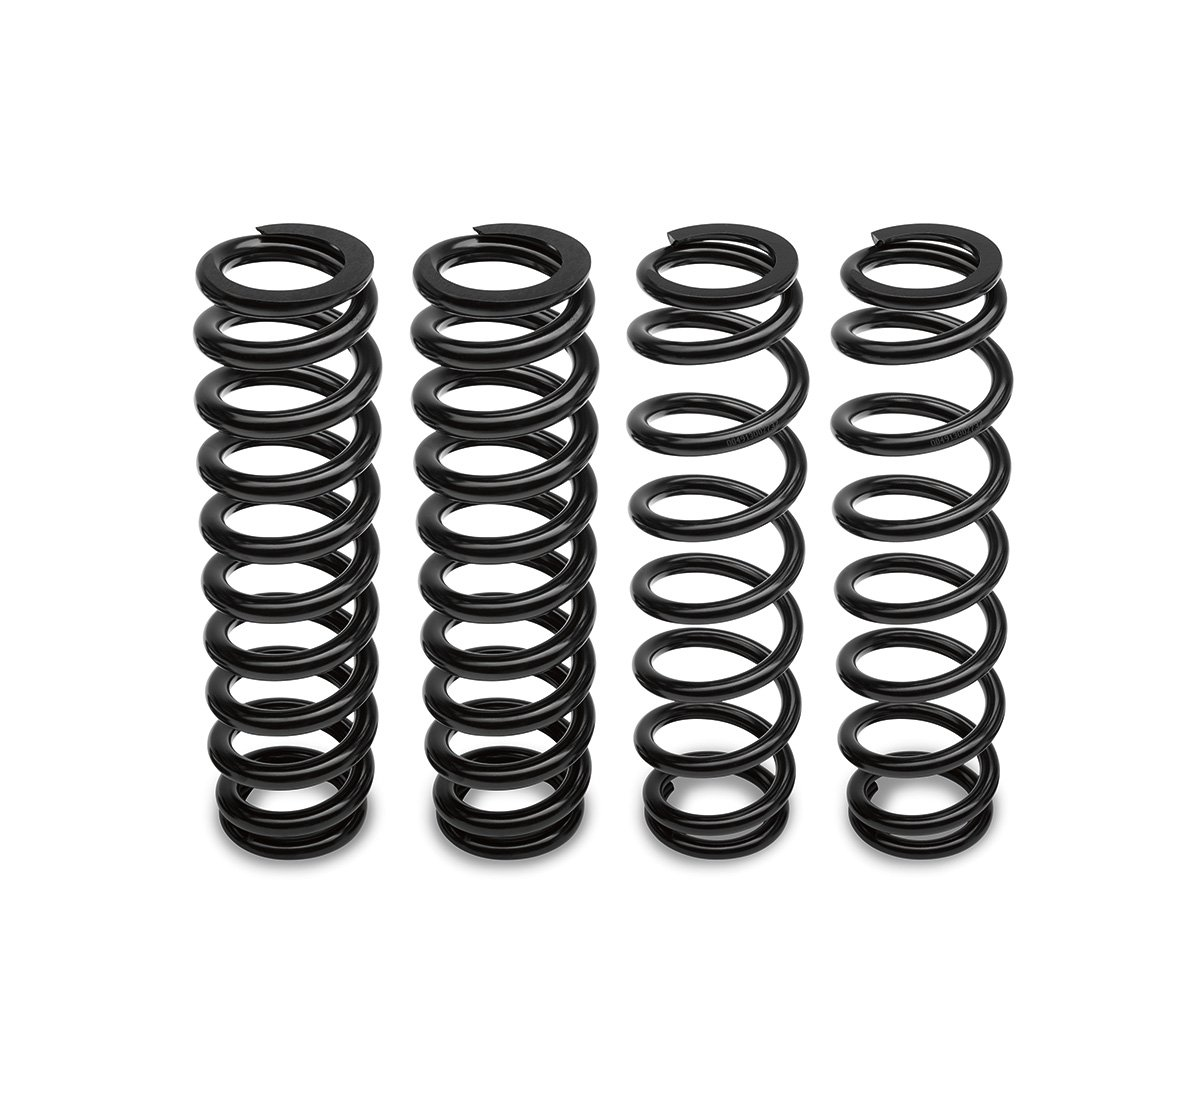 Kawasaki 99994-0514 Heavy Duty Spring (Set of 2 Front, 2 Rear) by Kawasaki